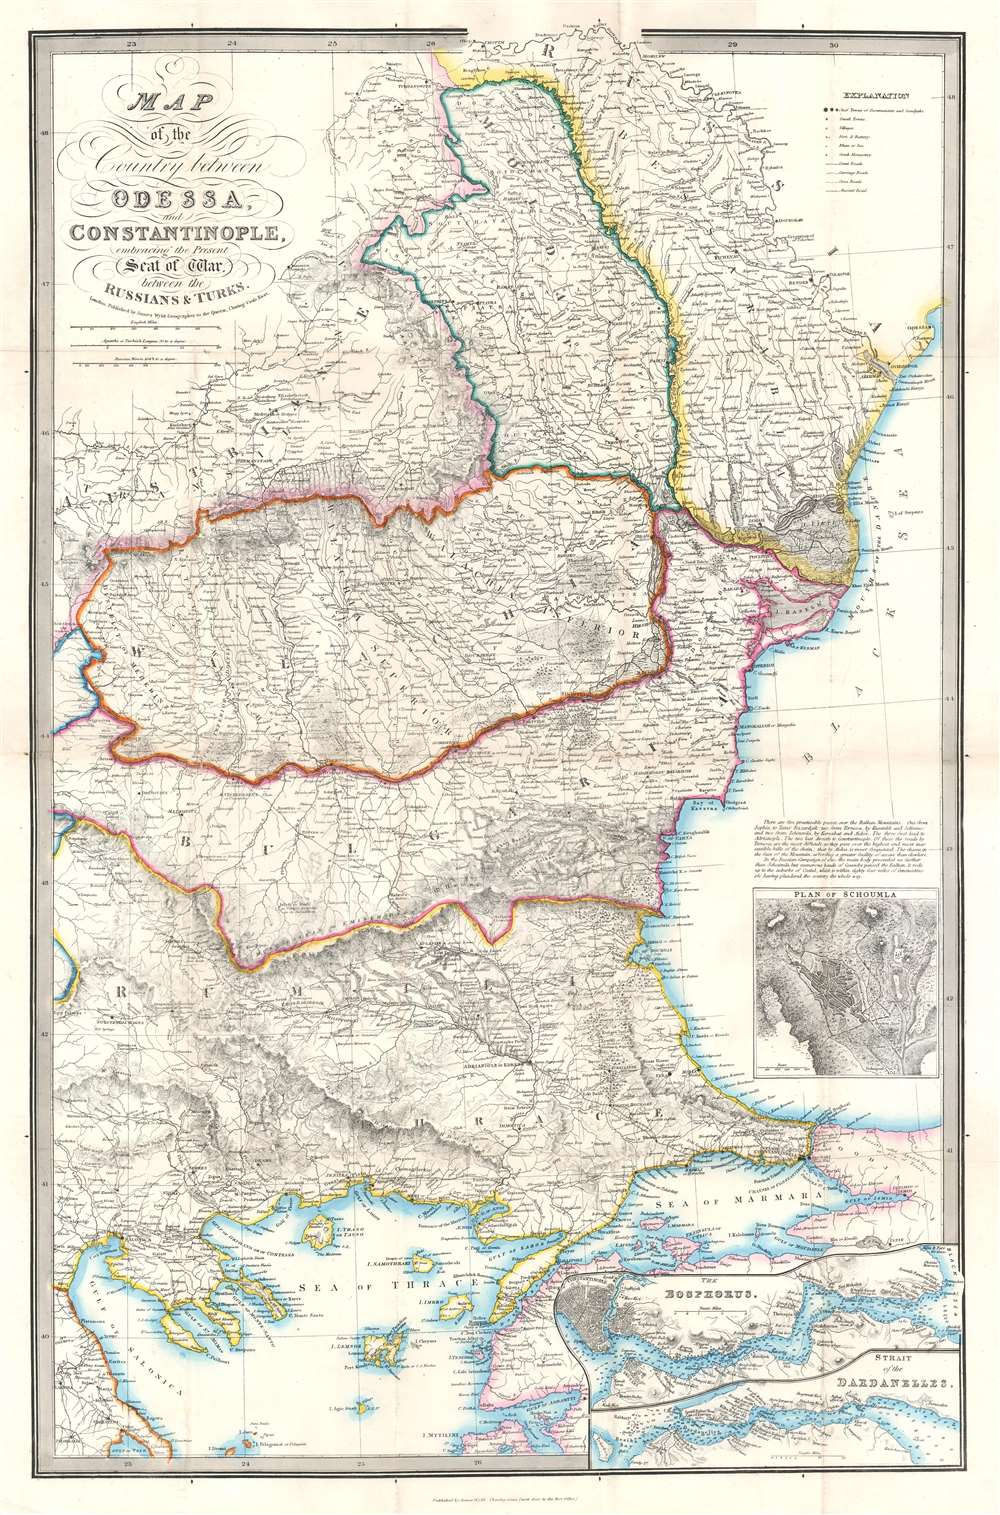 Map of the Country between Odessa and Constantinople, embracing the Present Seat of War between the Russians and Turks. - Main View